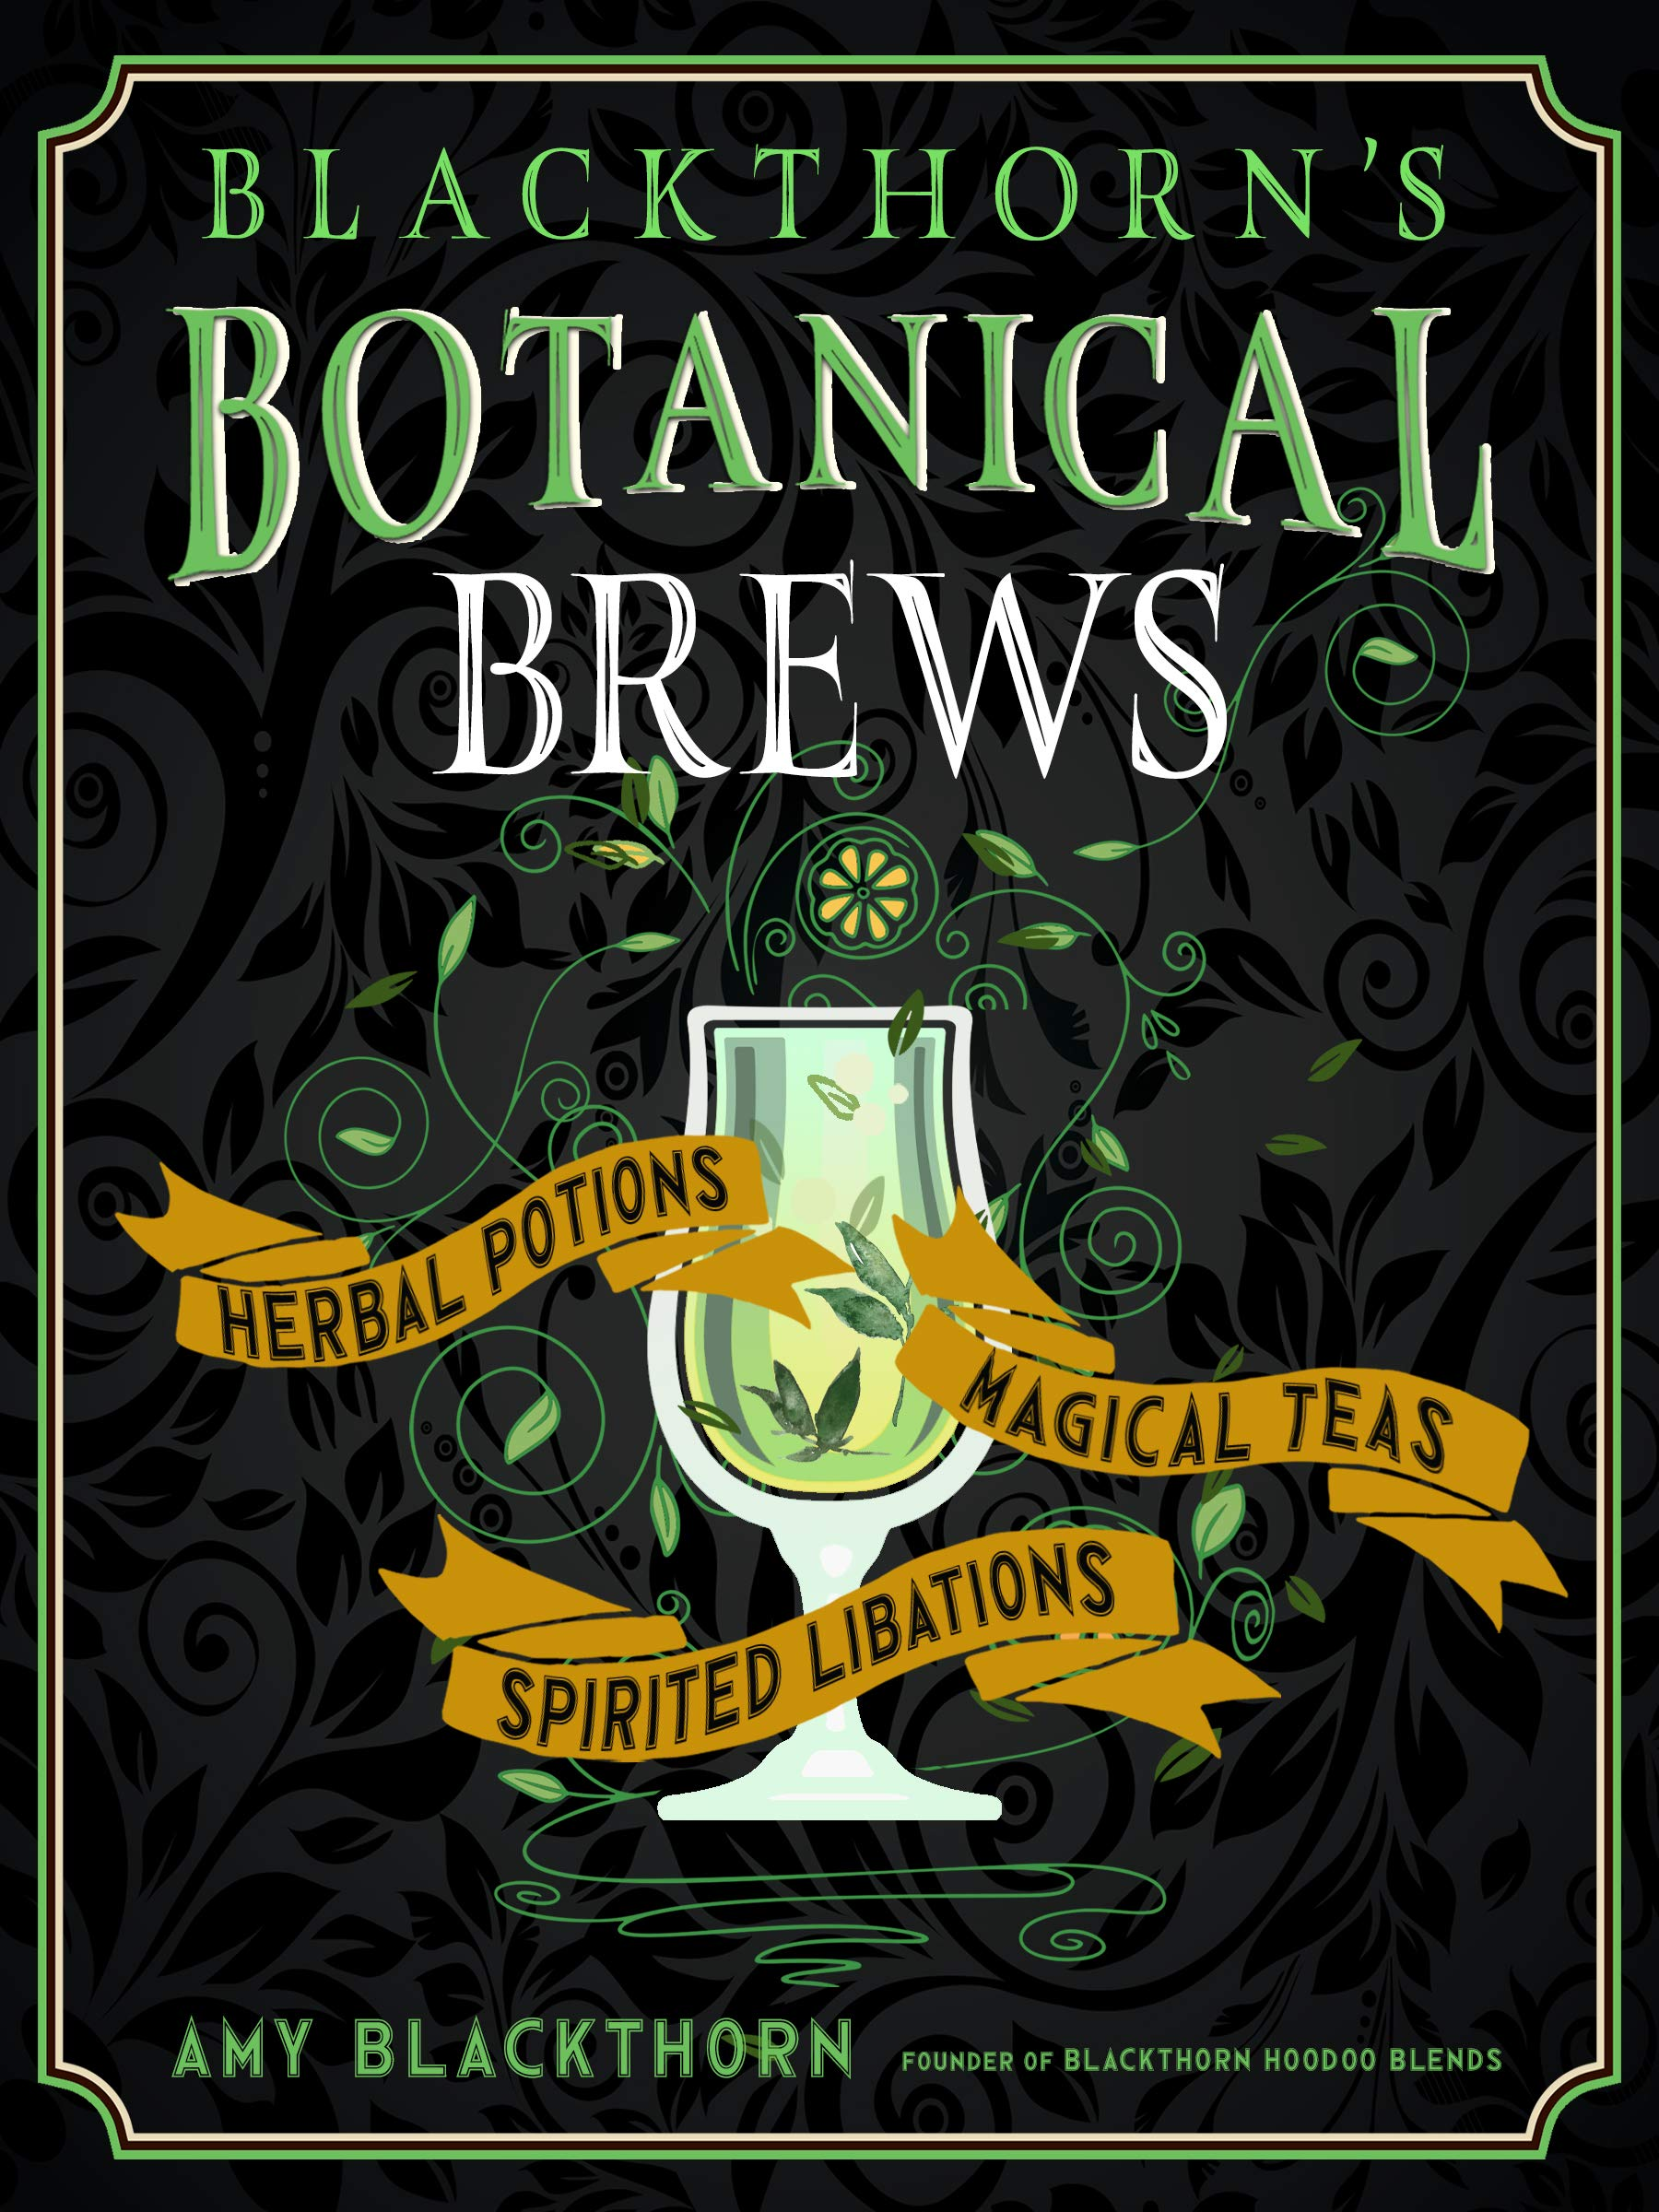 Blackthorn's Botanical Brews by Amy Blackthorn